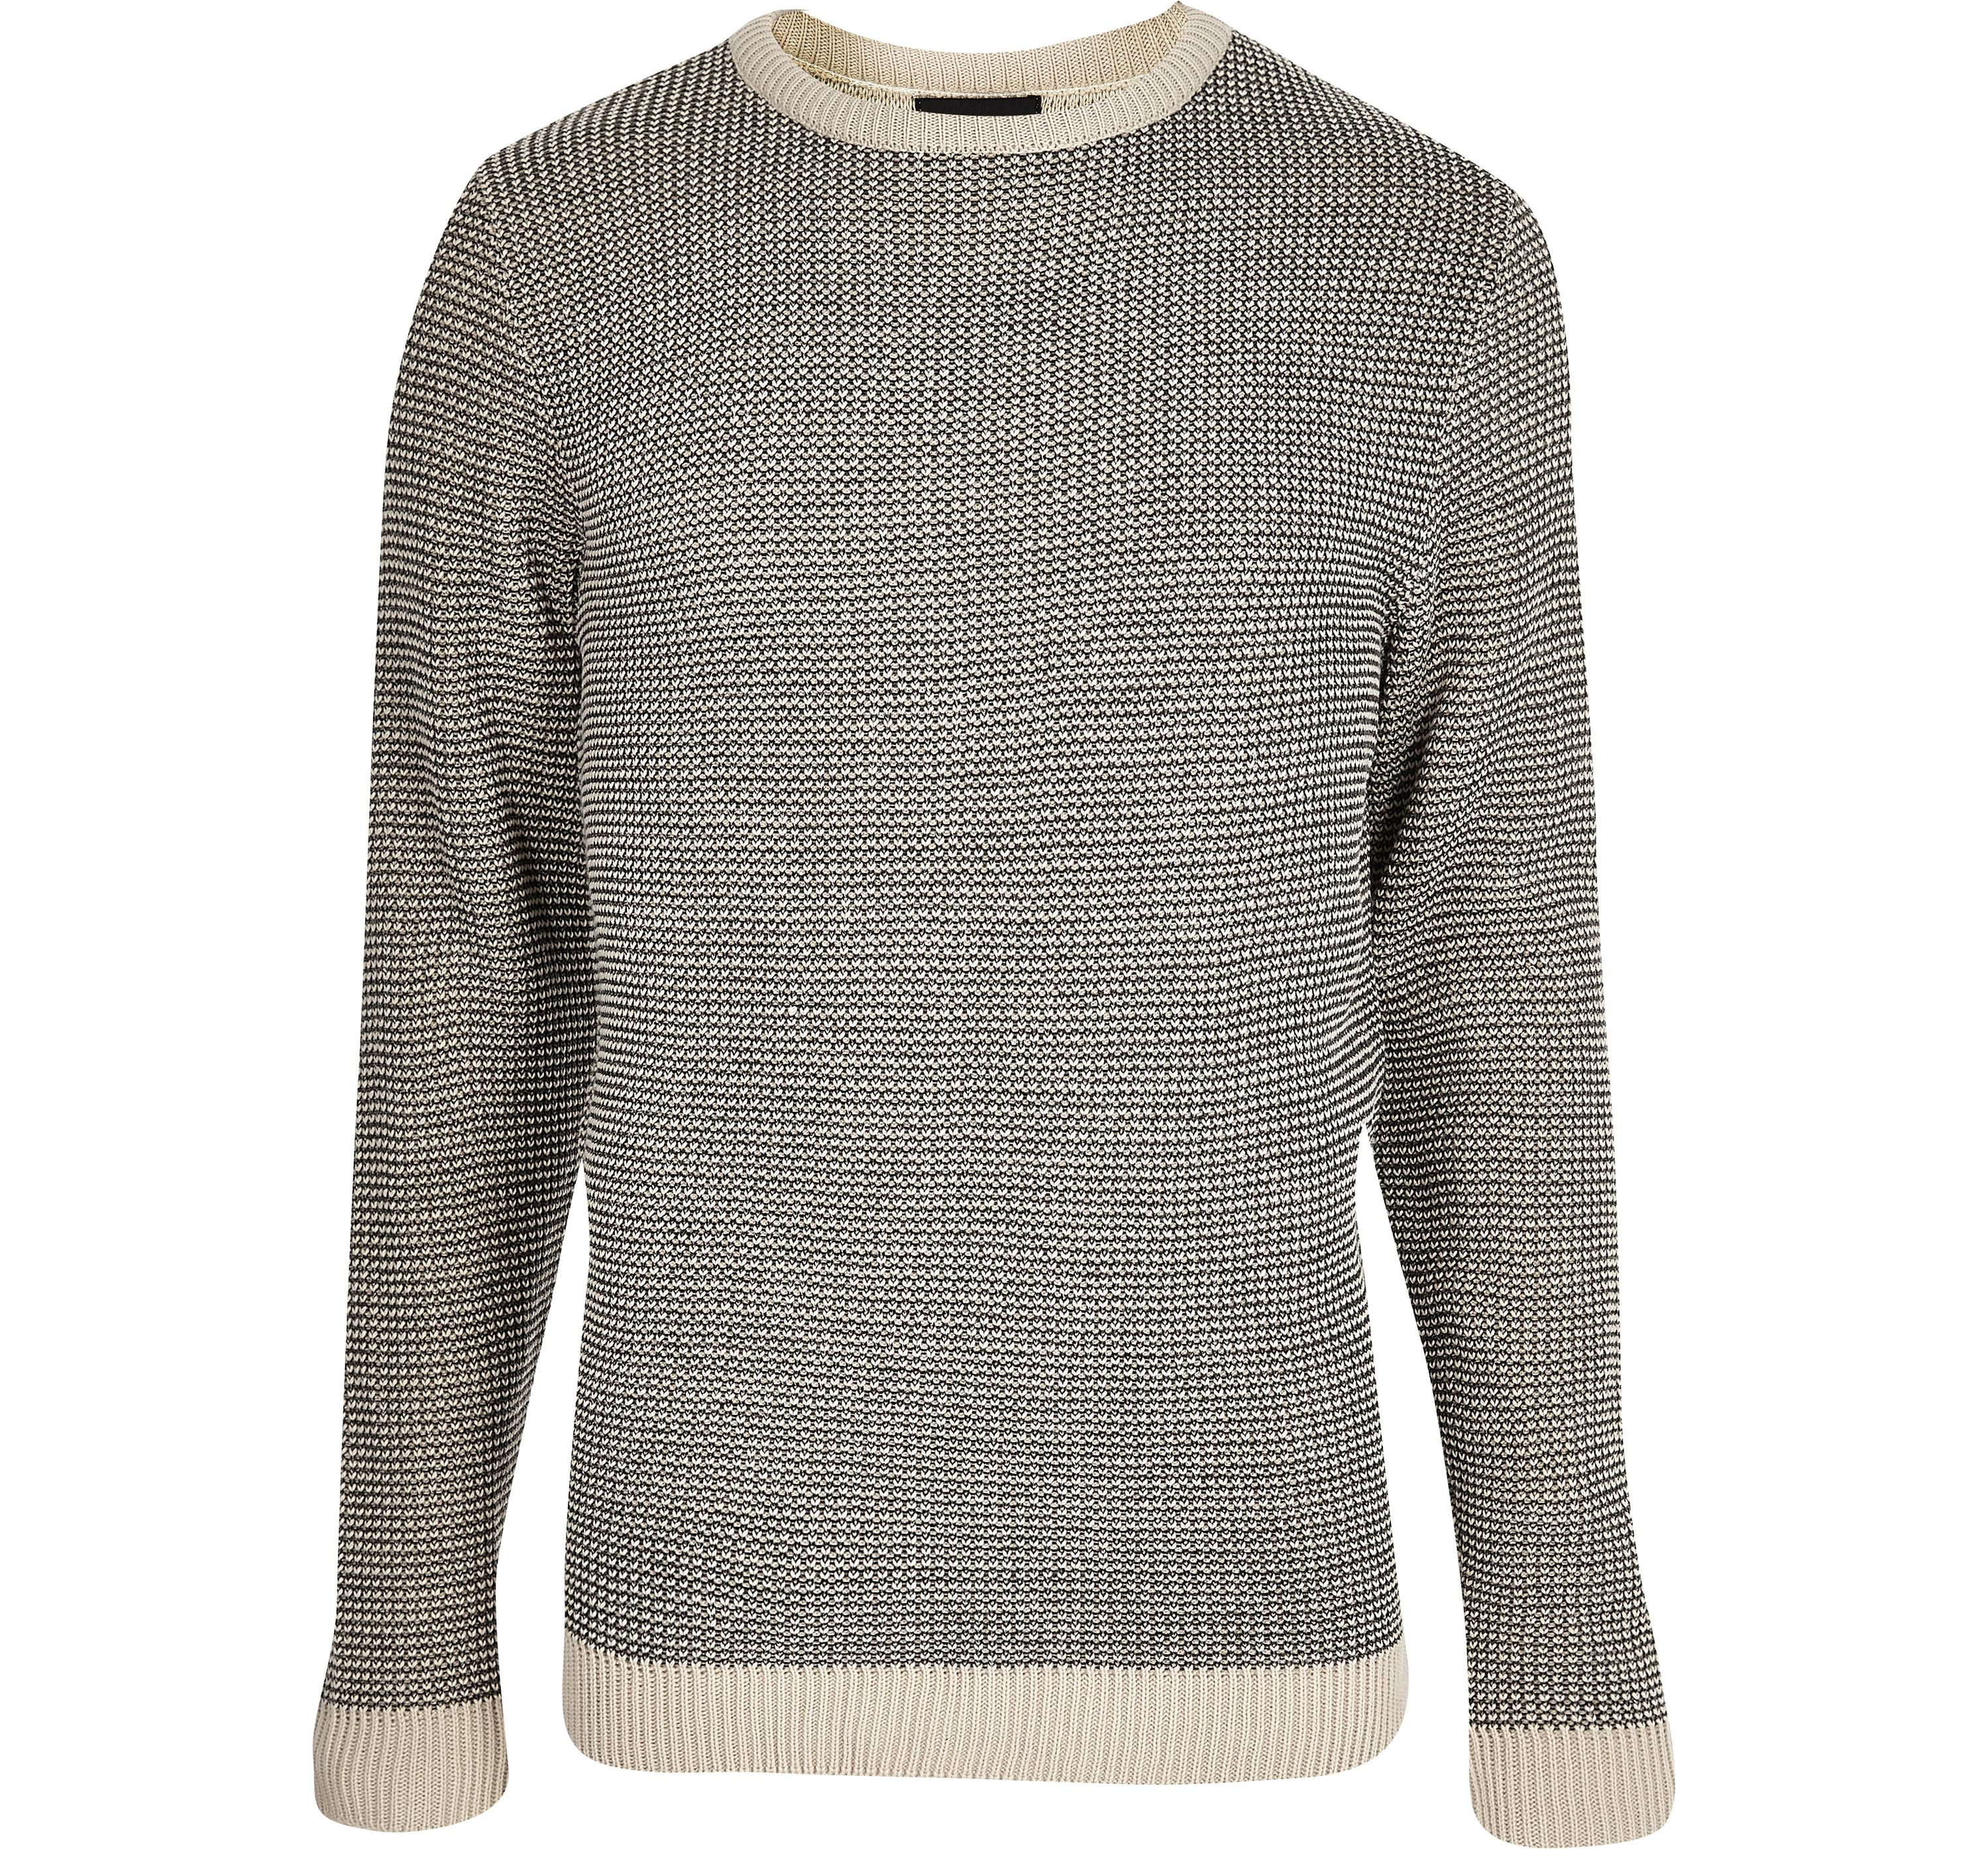 River Island Mens Grey and cream textured knit slim fit jumper